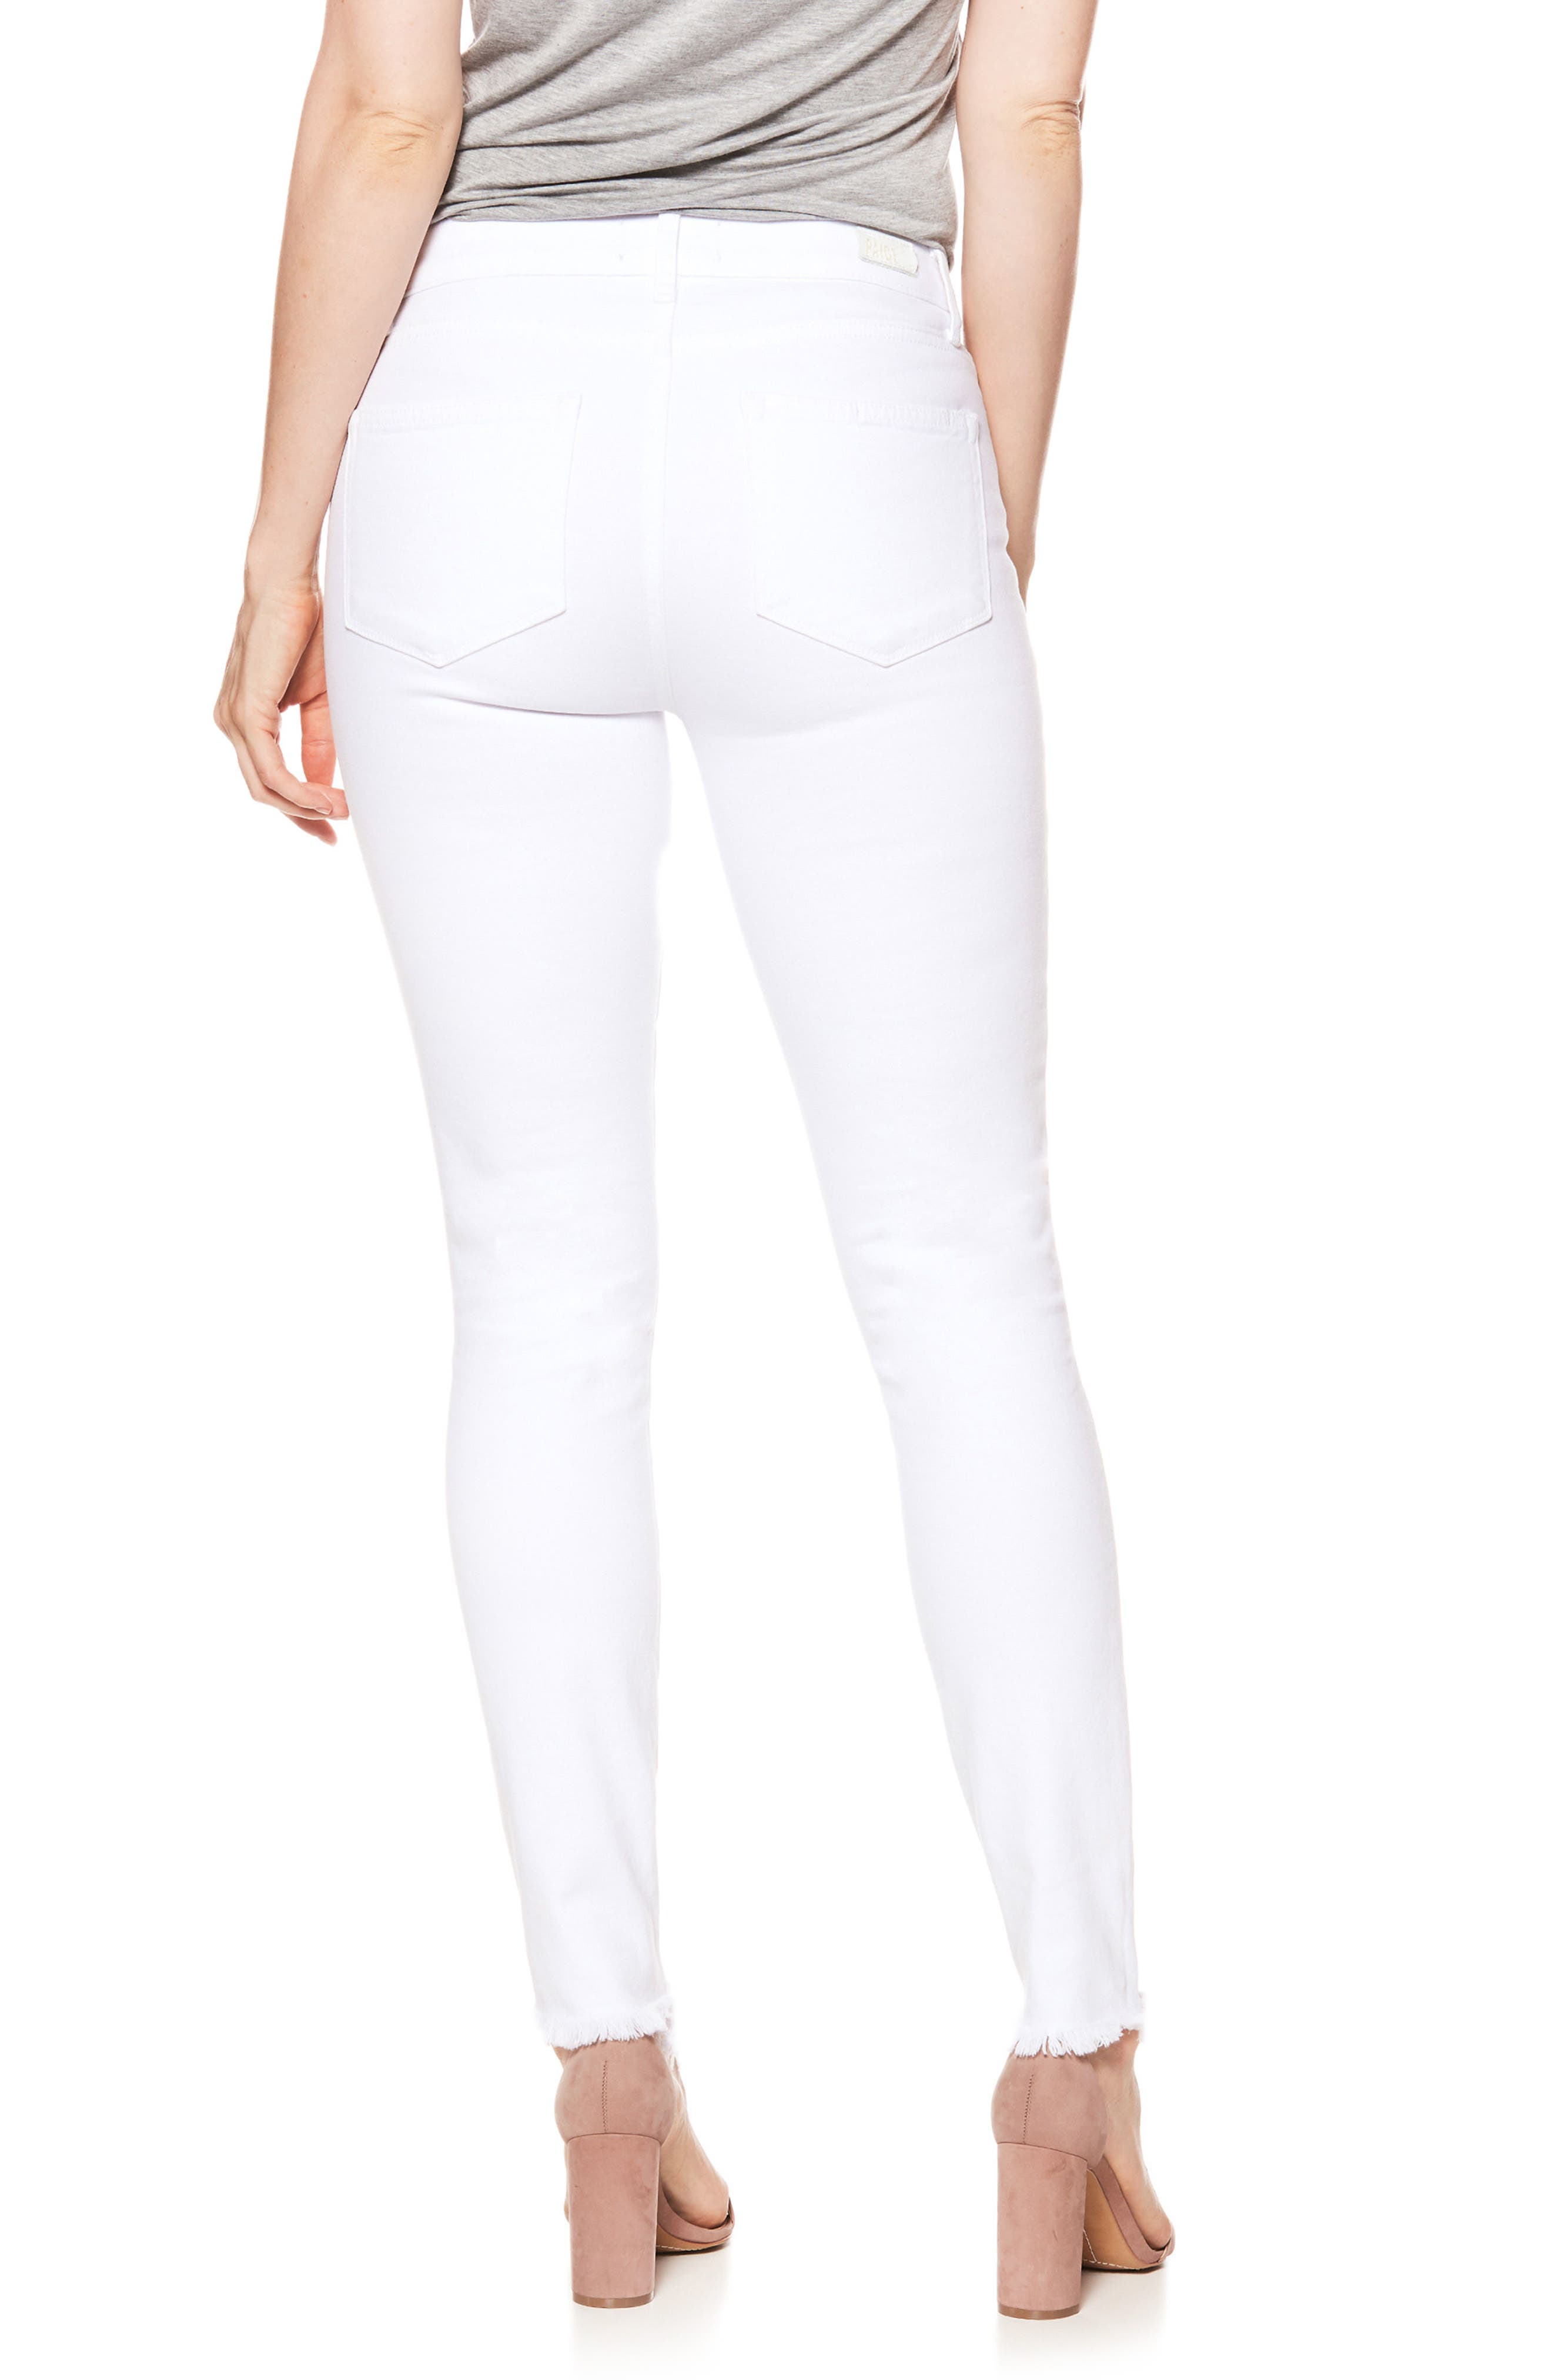 Hoxton High Waist Ankle Skinny Jeans,                             Alternate thumbnail 3, color,                             Crisp White